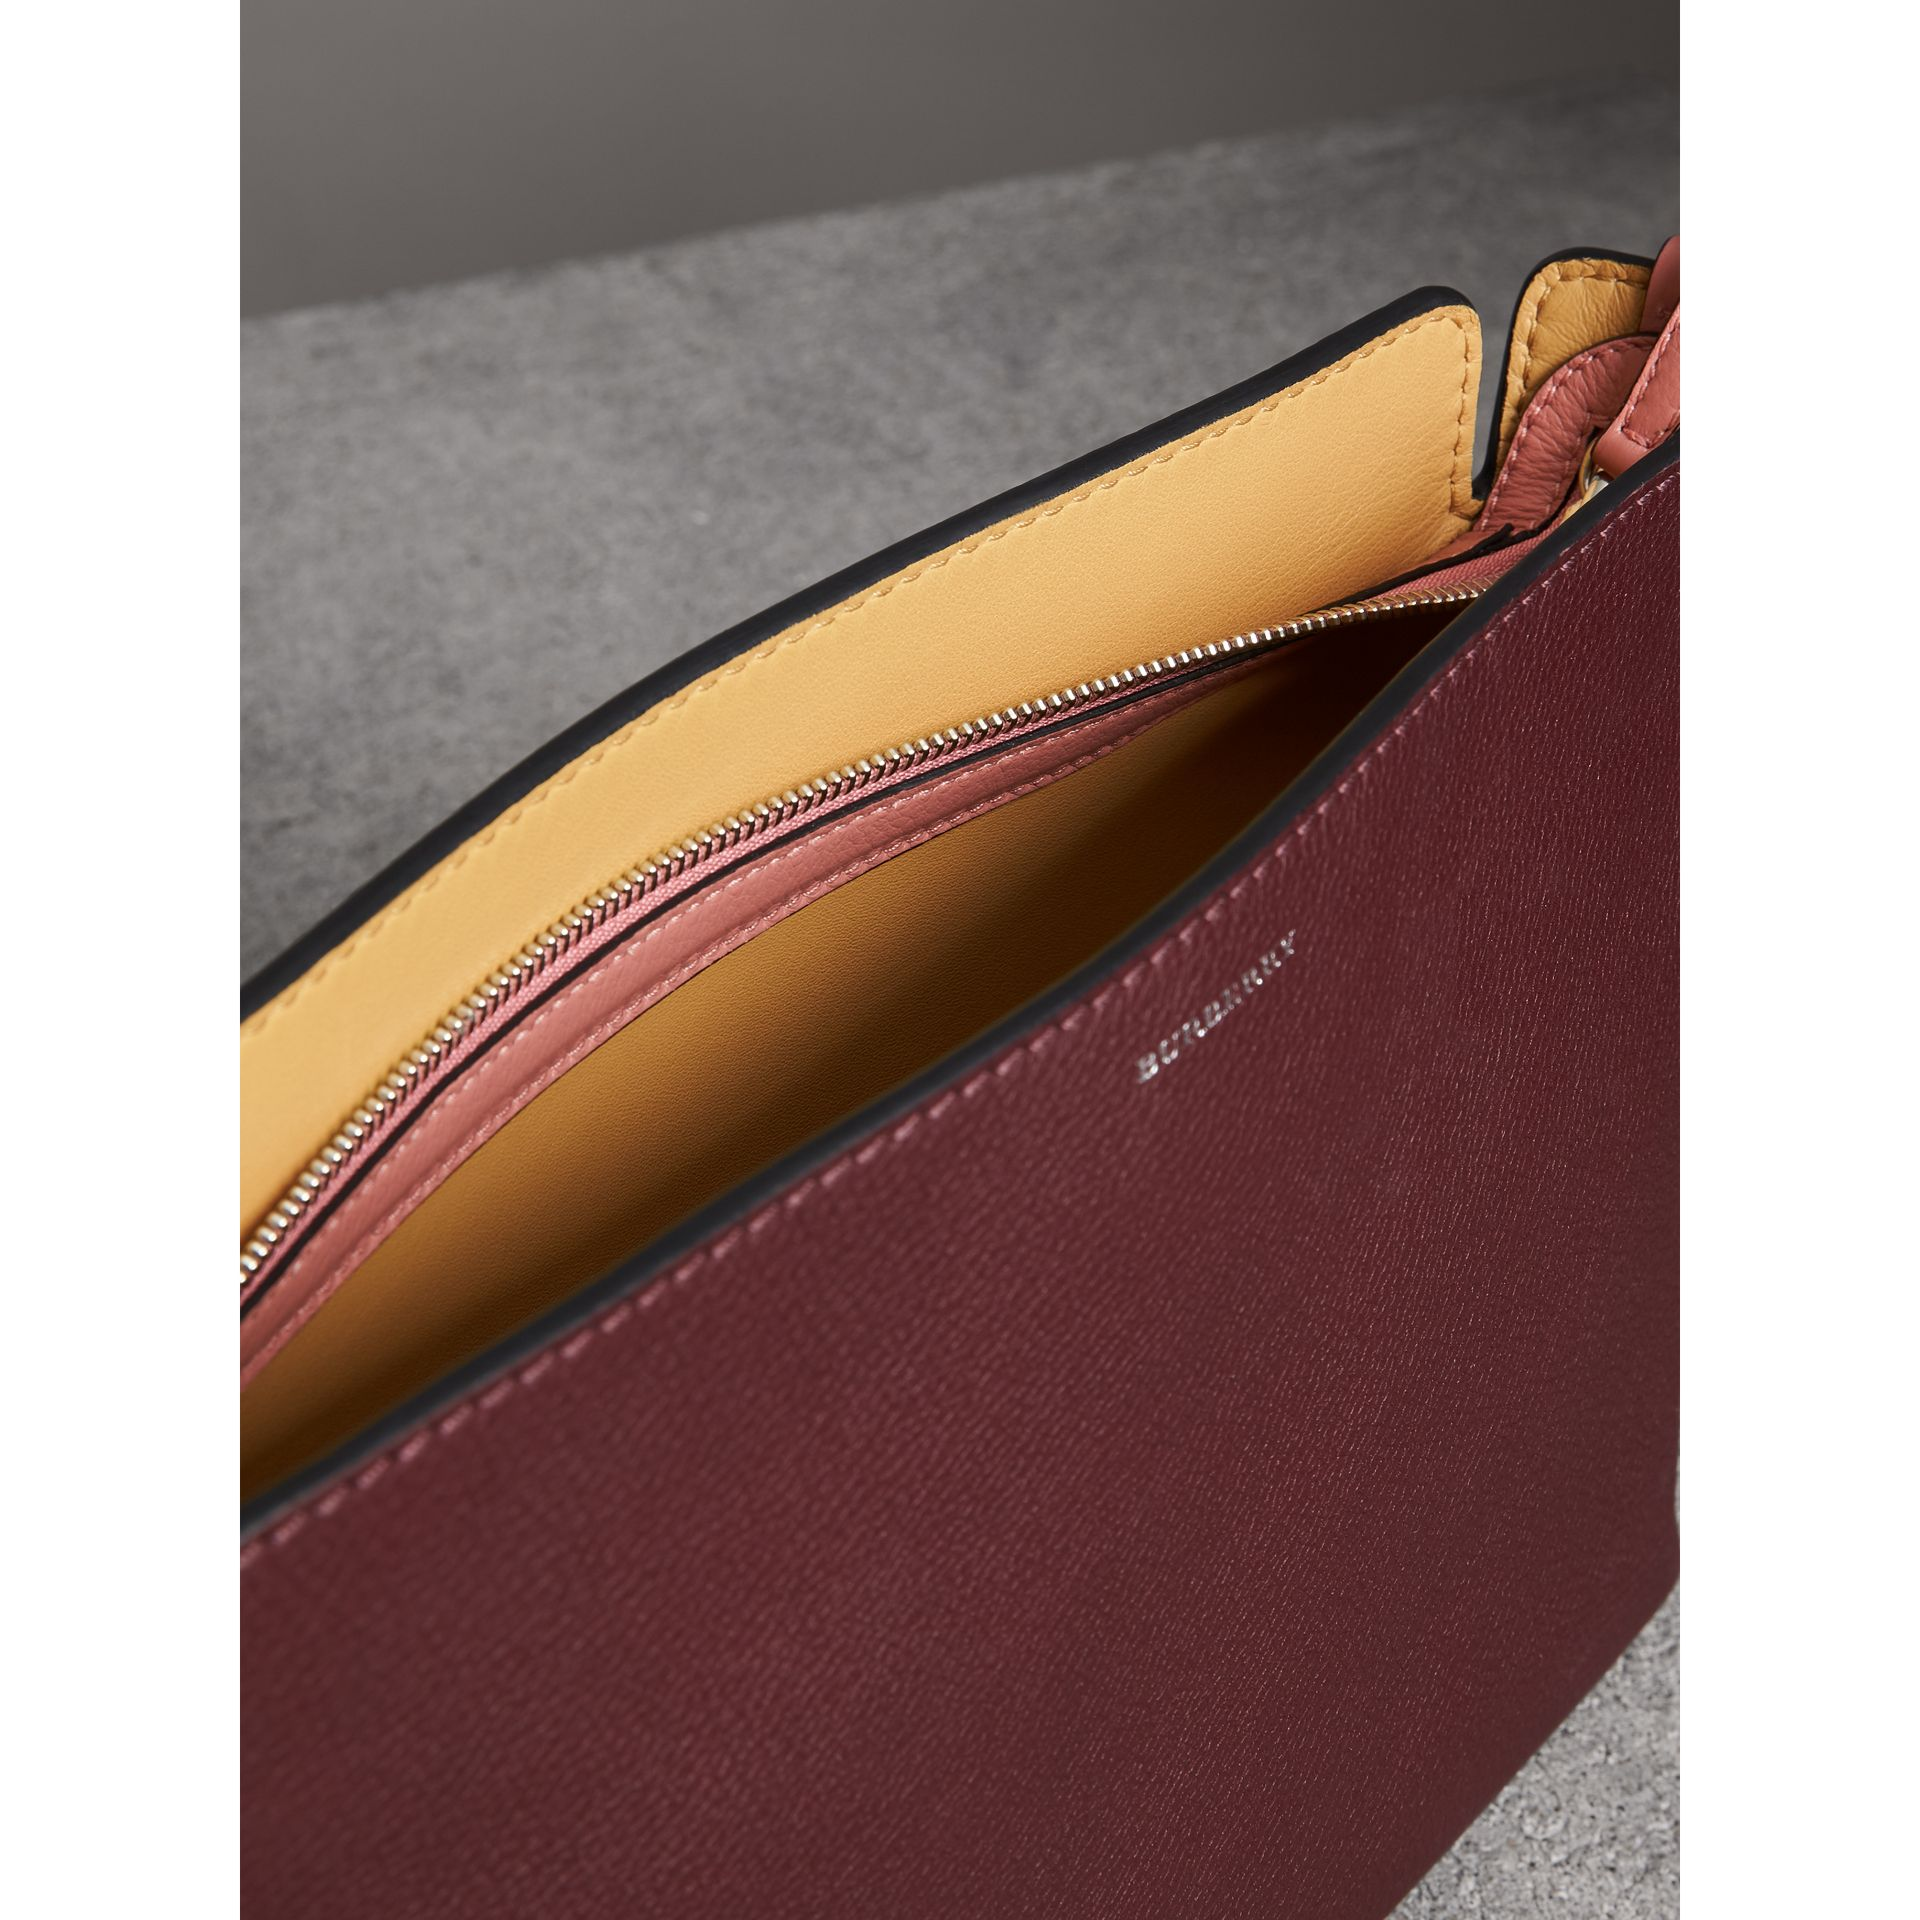 Medium Tri-tone Leather Clutch in Deep Claret/dusty Rose - Women | Burberry - gallery image 5